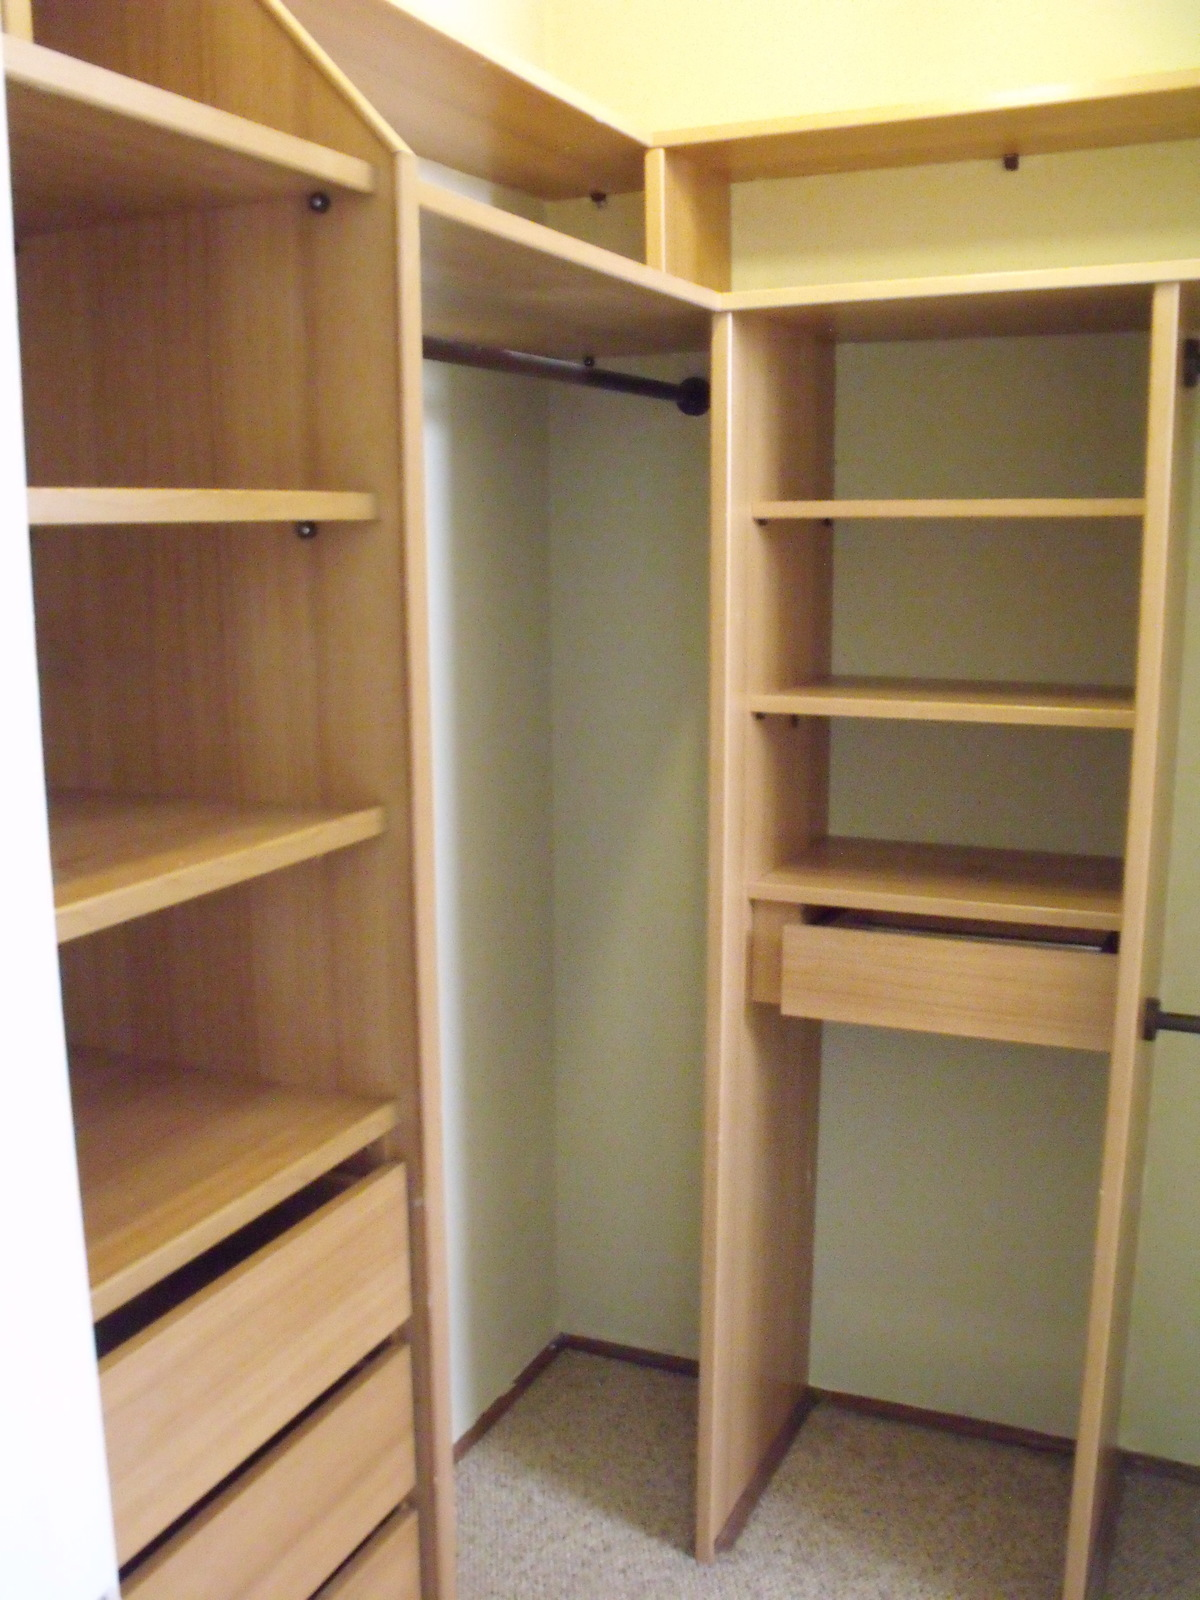 35 de 48: Walking closet dormitorio principal.